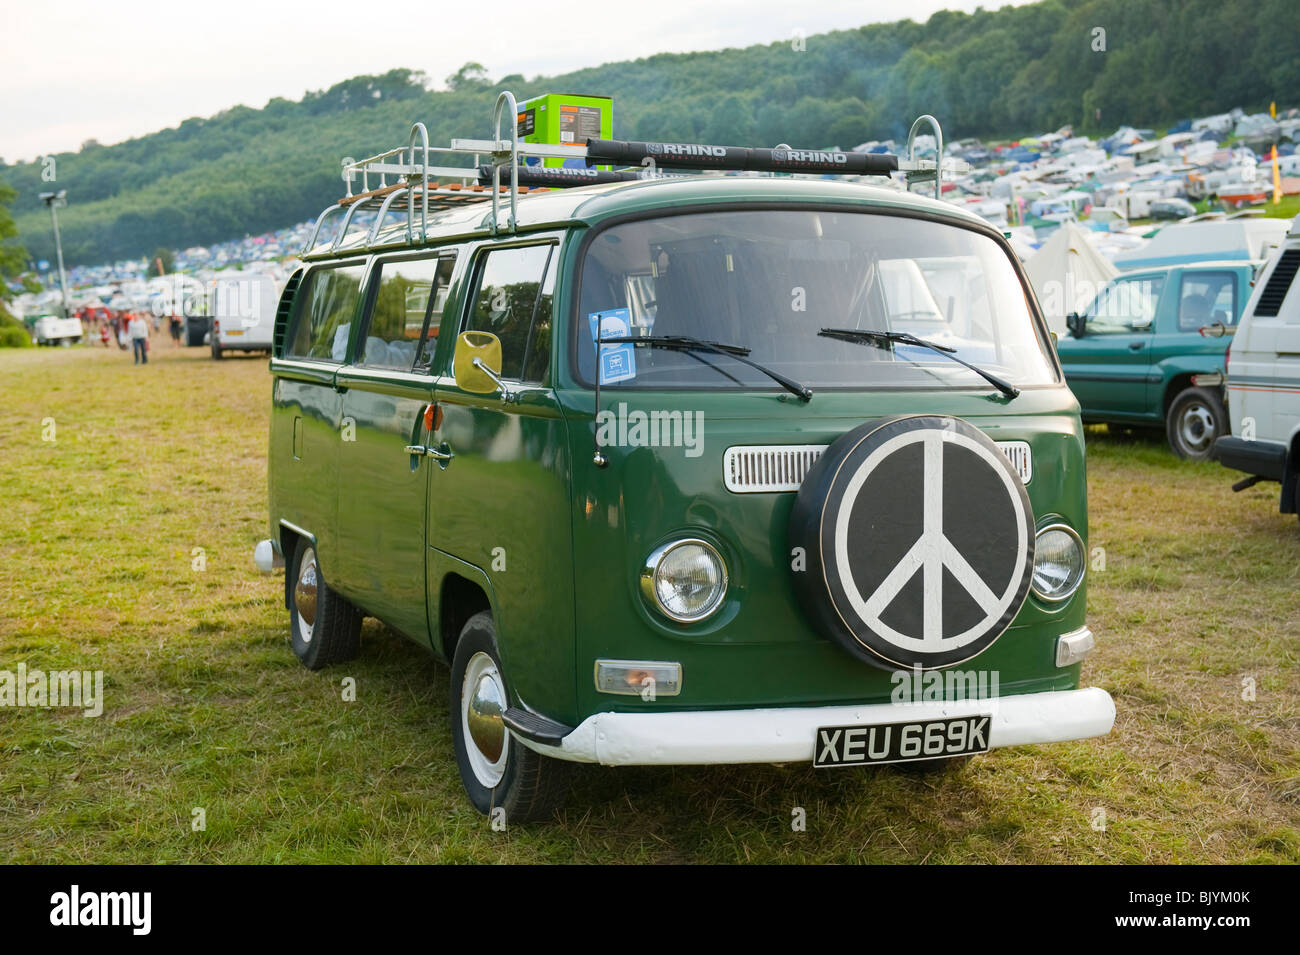 Old Green Volkswagen Camper Van With CND Symbol